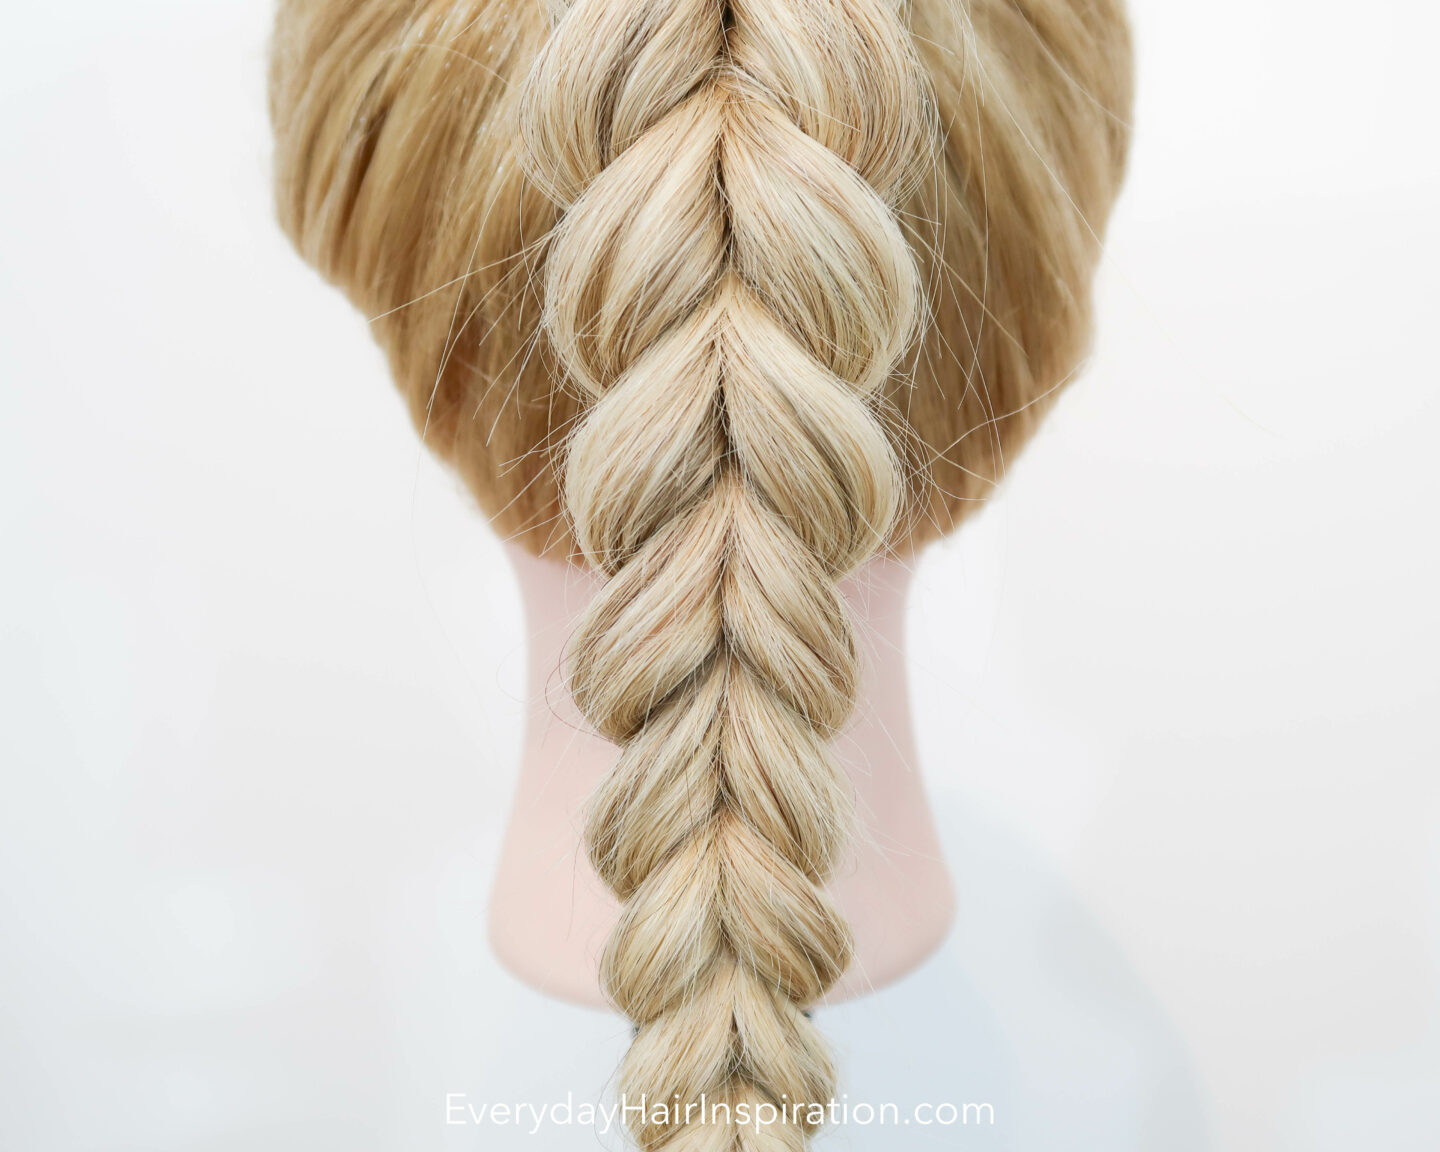 Blonde hairdresser doll seen from the back, close up, with a pull through braid in a high ponytail.